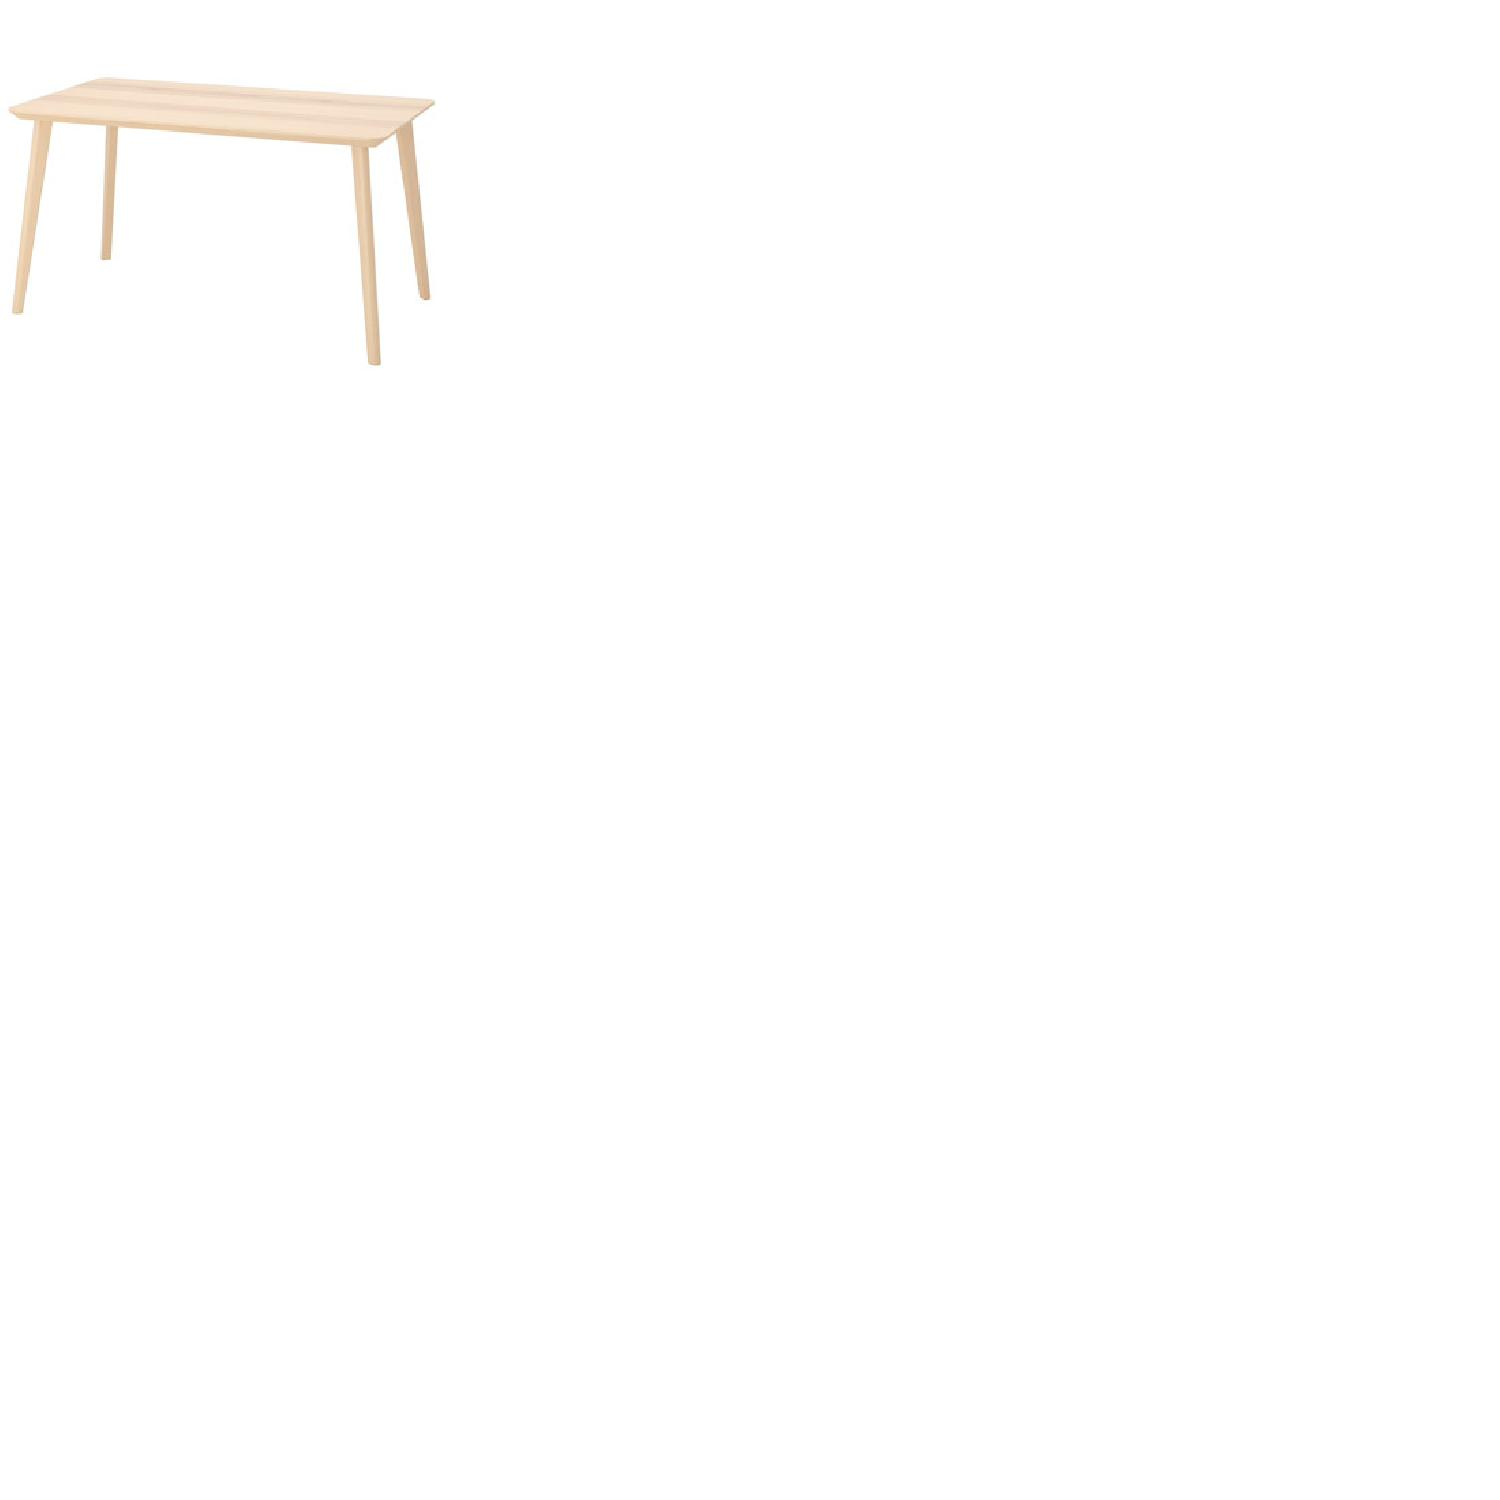 Ikea Lisabo Dining Table w/ 4 Norrnas Chairs - image-1